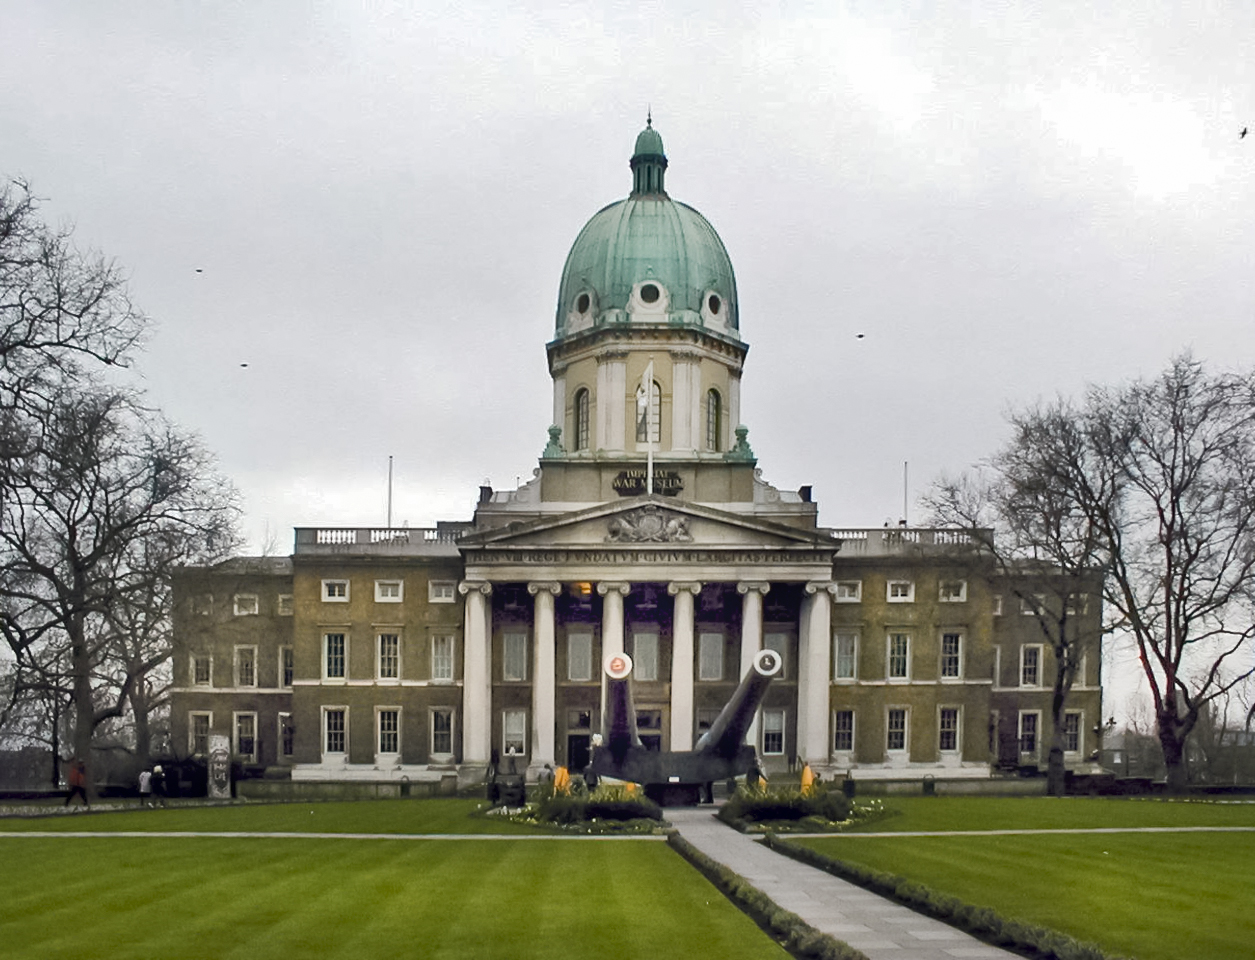 http://upload.wikimedia.org/wikipedia/commons/a/a8/Imperial_War_Museum_Front.JPG